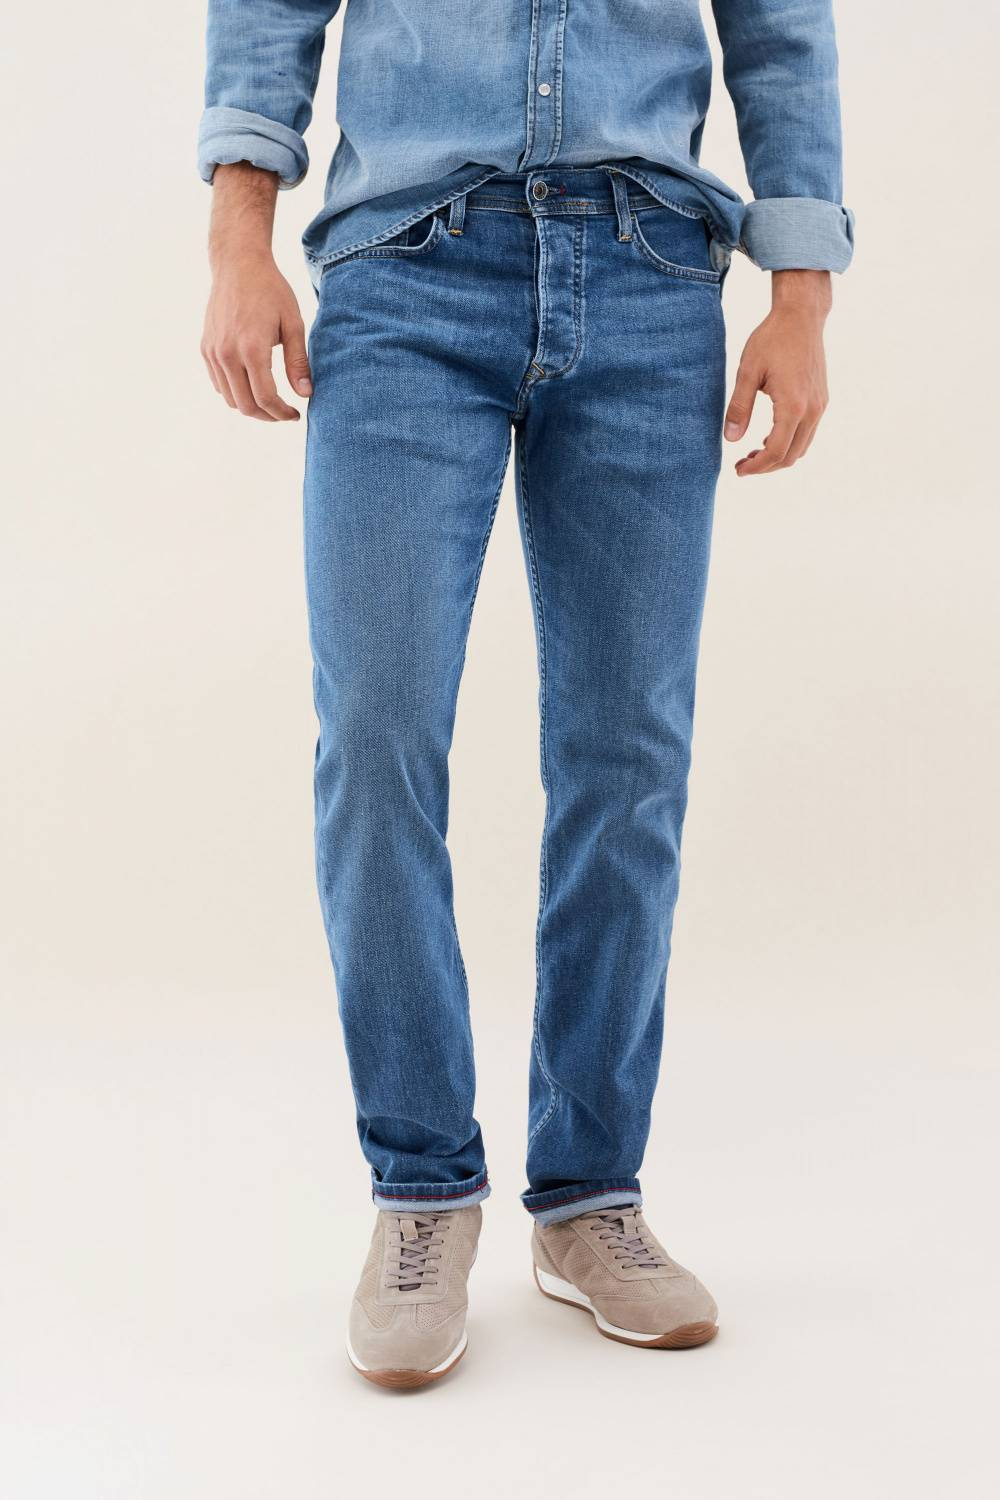 Navarro straight medium rinse denim jeans - Salsa